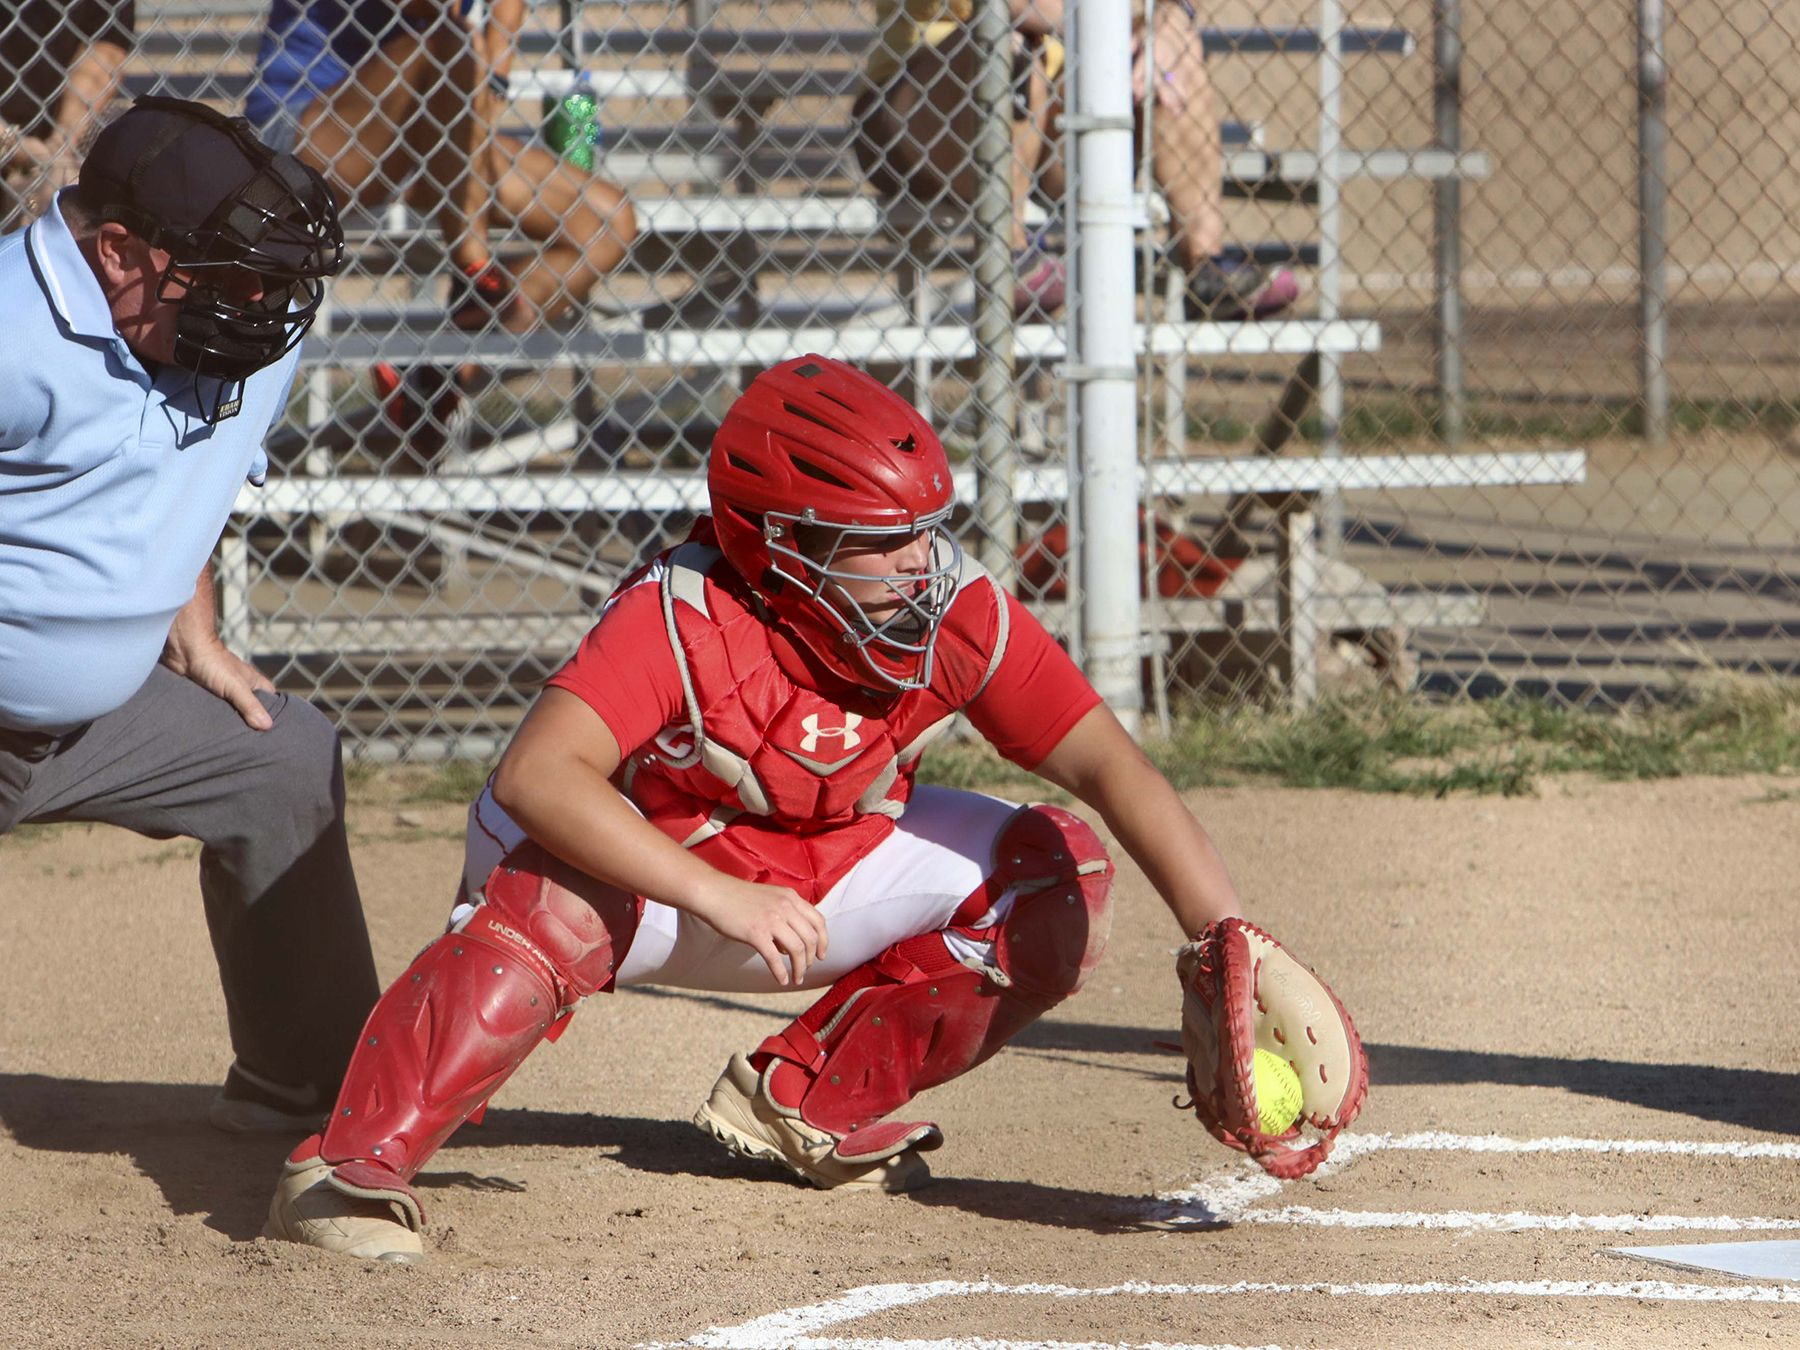 The CJ catcher receives the ball